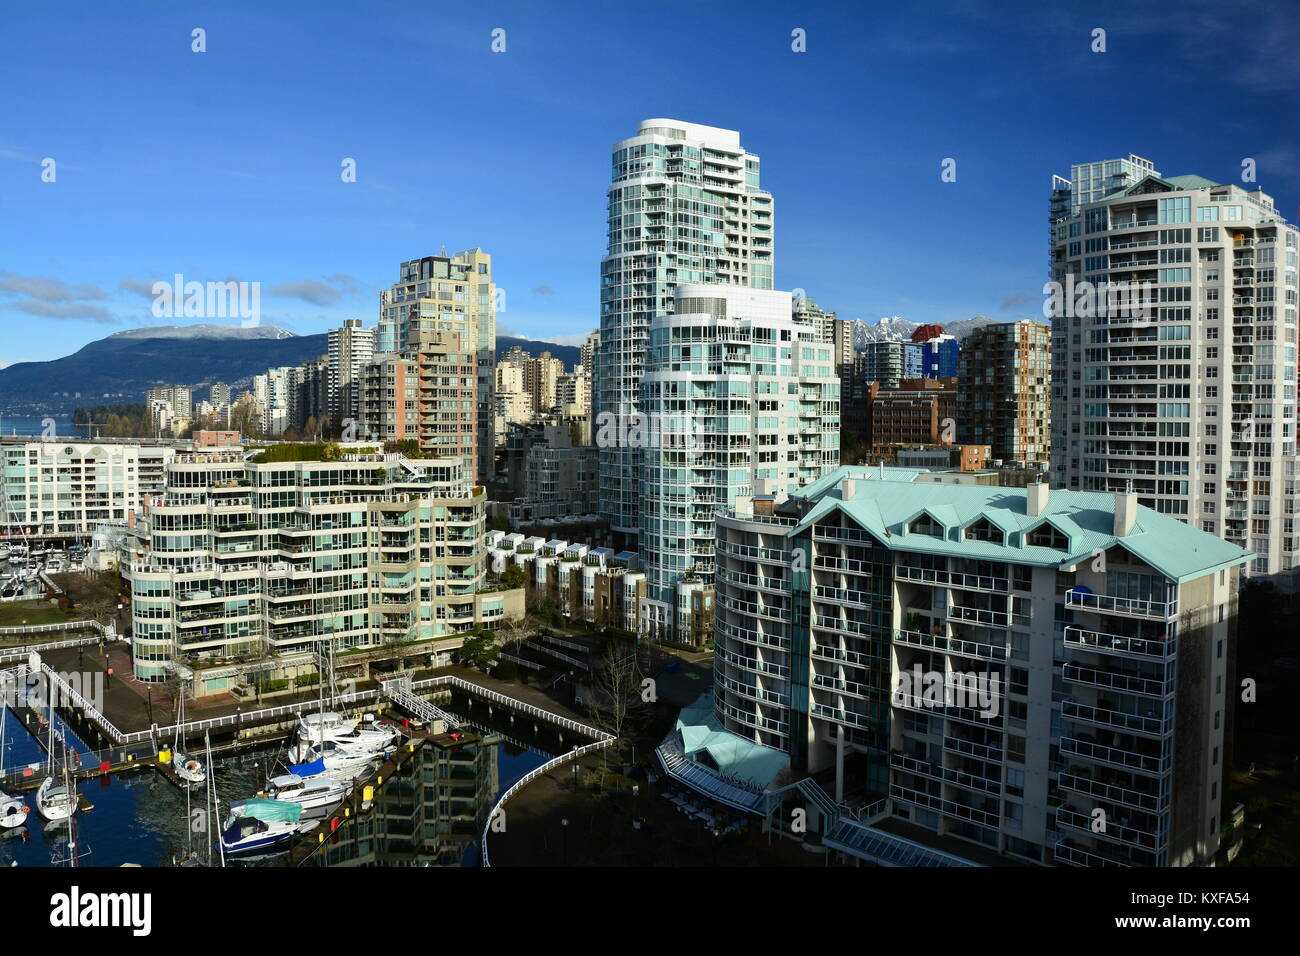 Luxury condos and high rises in False Creek in Vancouver BC,Canada. - Stock Image